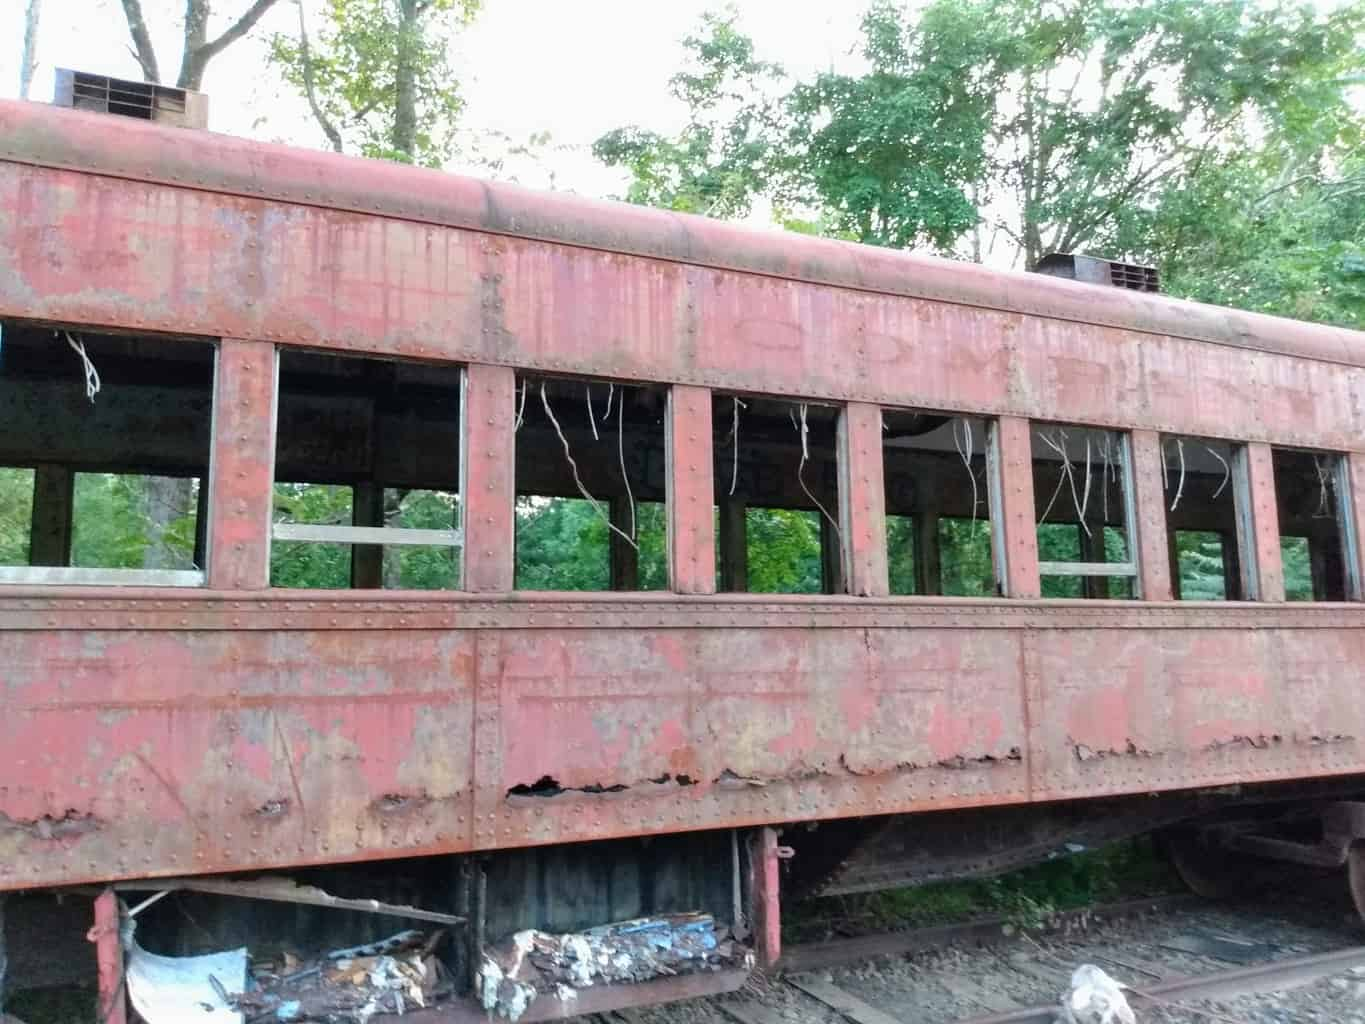 Old Reading Company Coach on a New Hope Railroad Siding. Side view